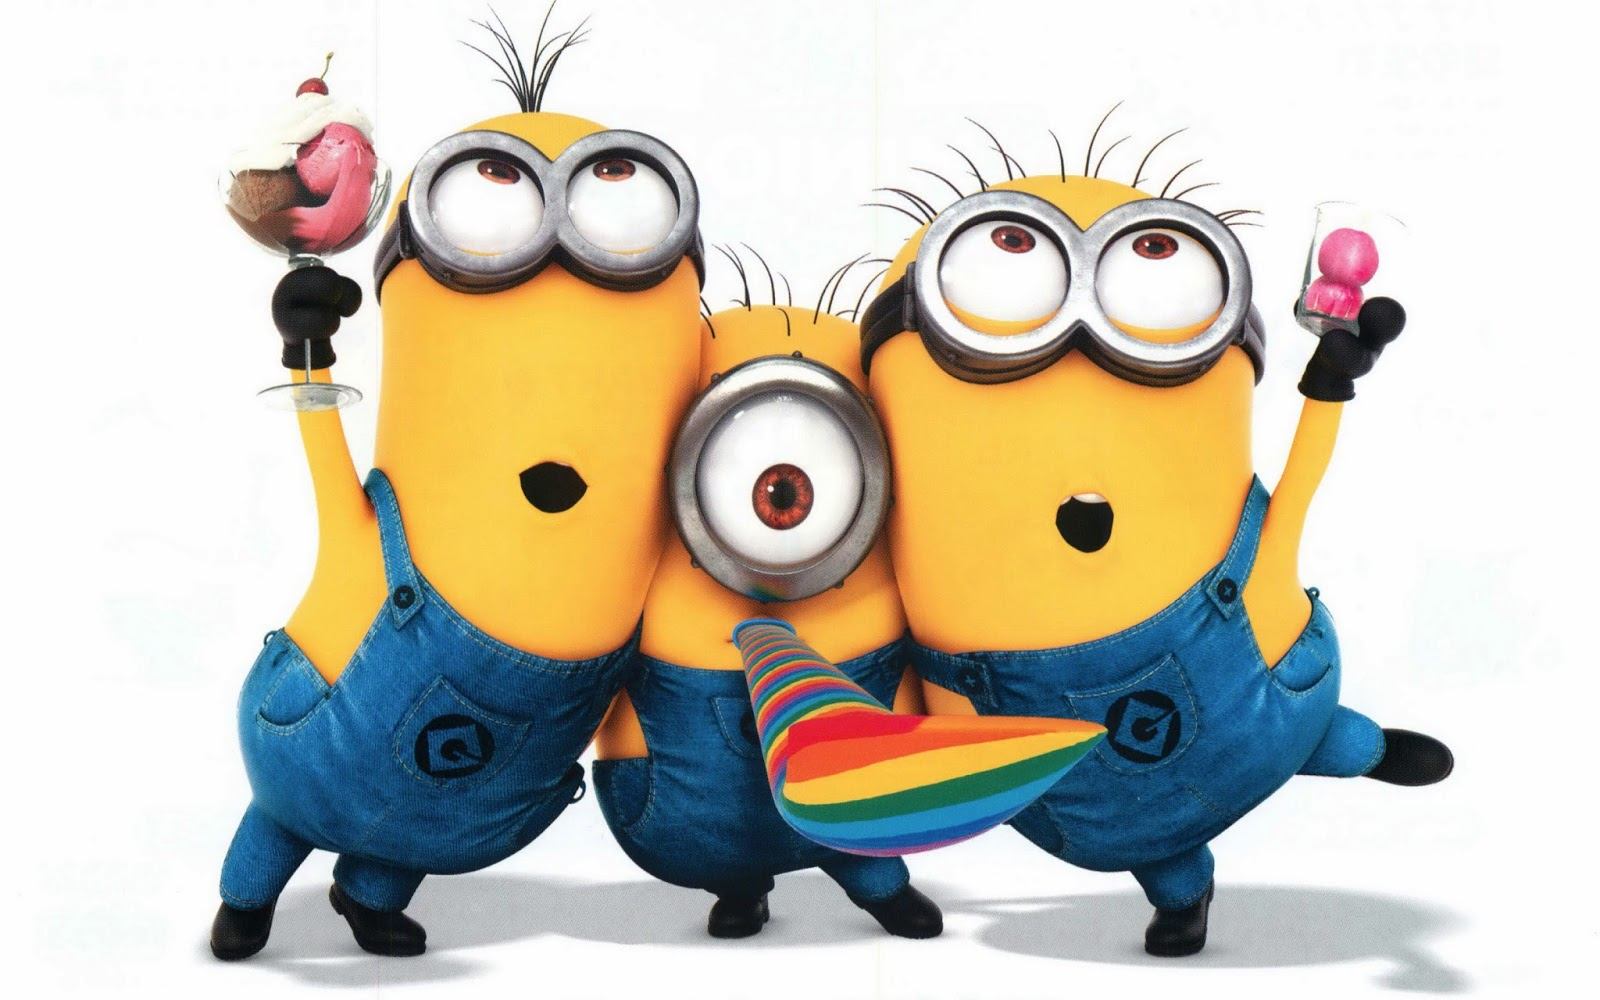 ea346-despicable_me_2_minions-wide